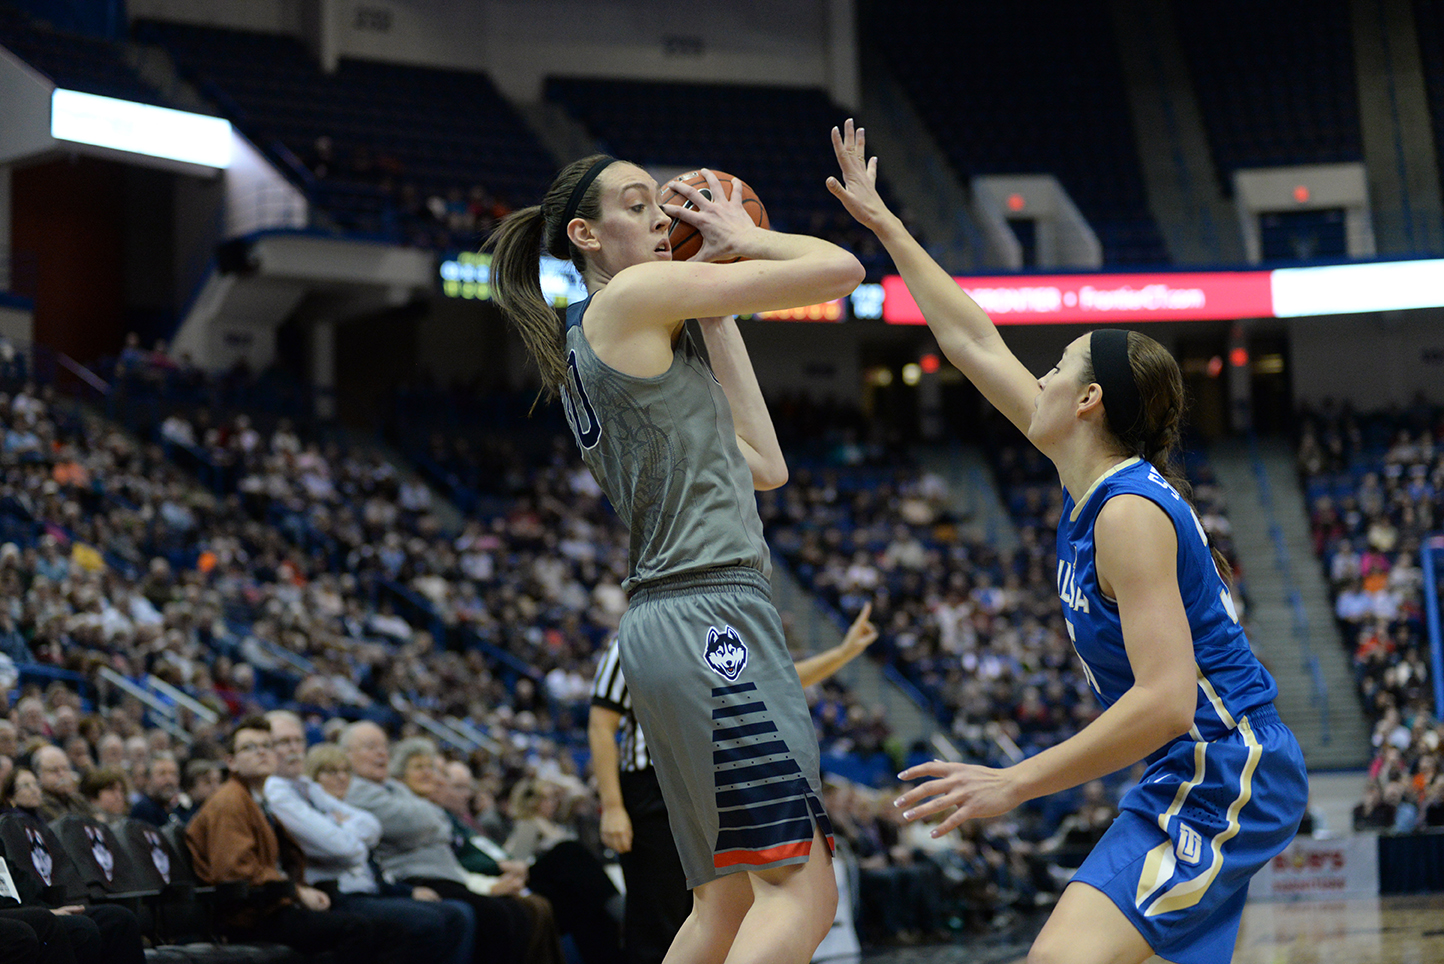 Forward Breanna Stewart checks out the defense during UConn's 95-35 victory. Stewart was recently named a finalist for a spot on Team USA in the 2016 Olympics. (Ashley Maher/The Daily Campus)